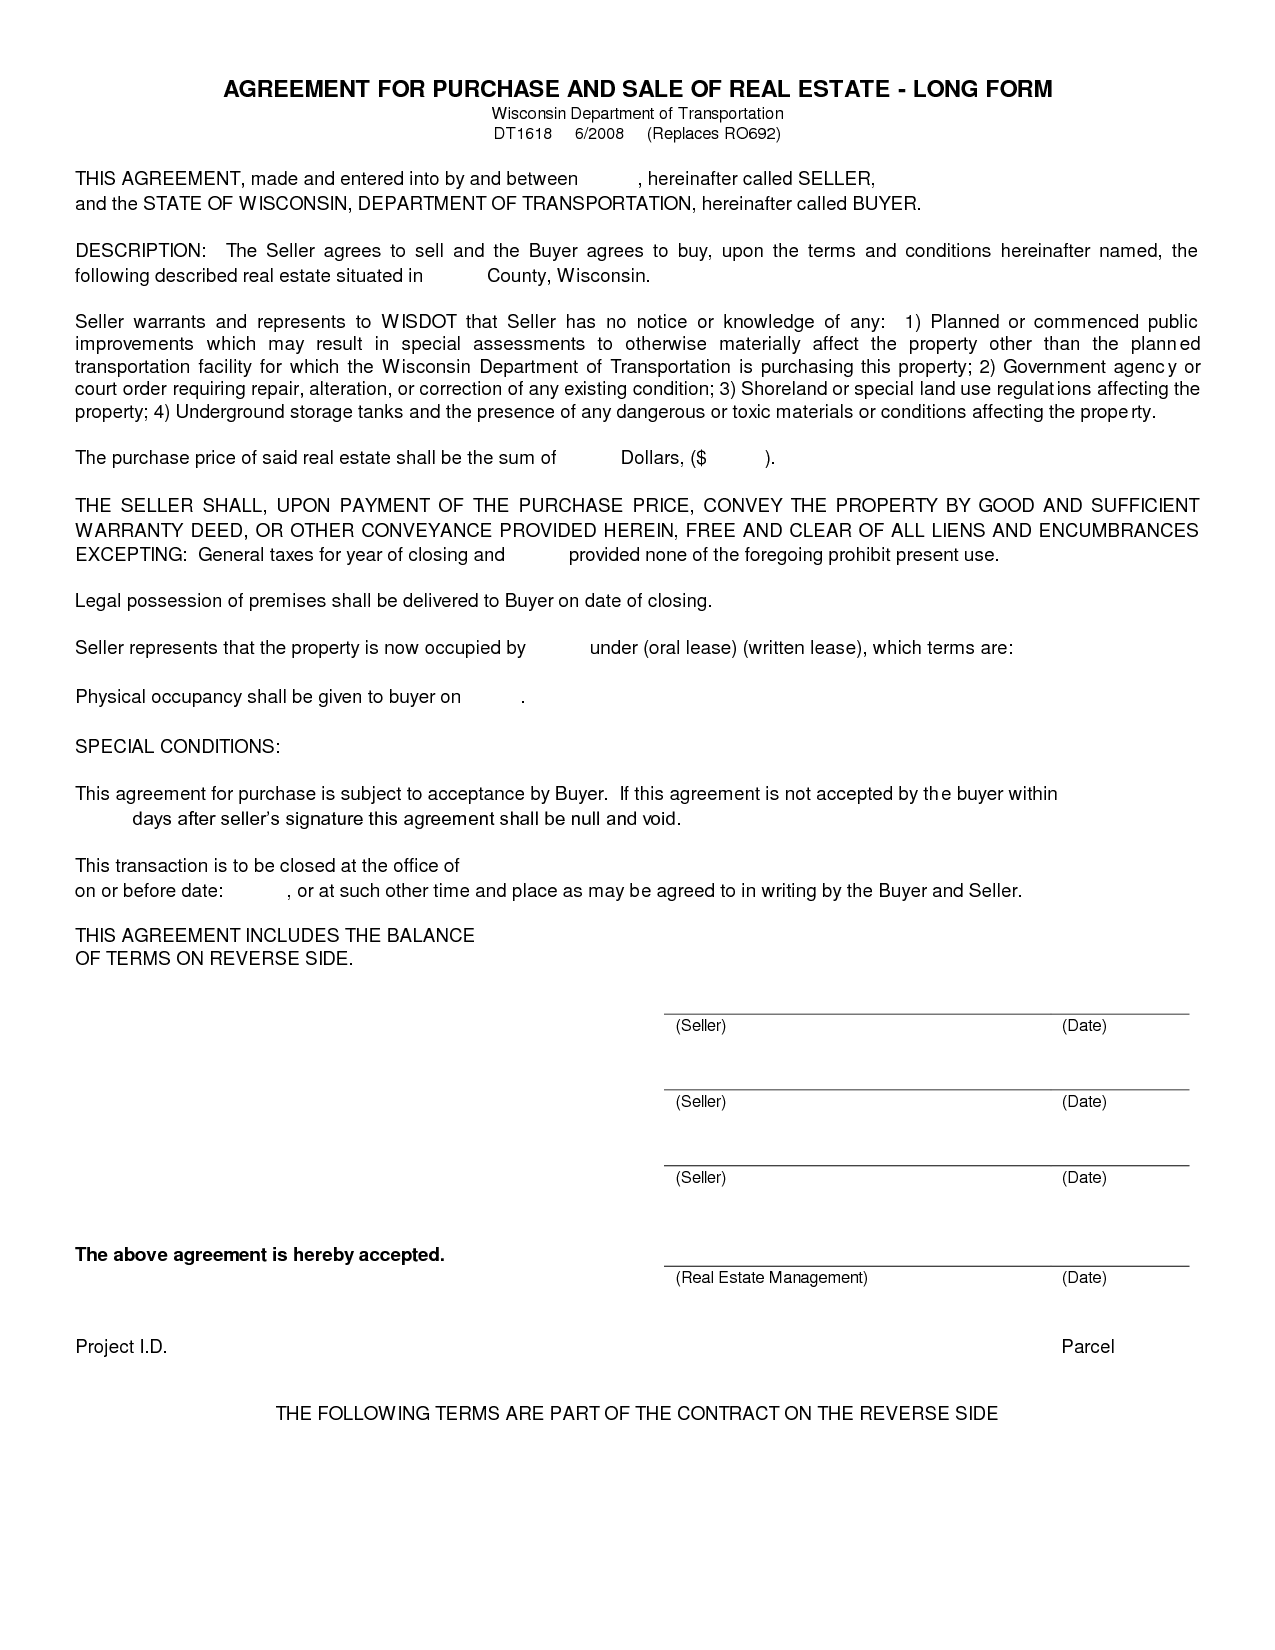 Monster image with printable estate sale contract